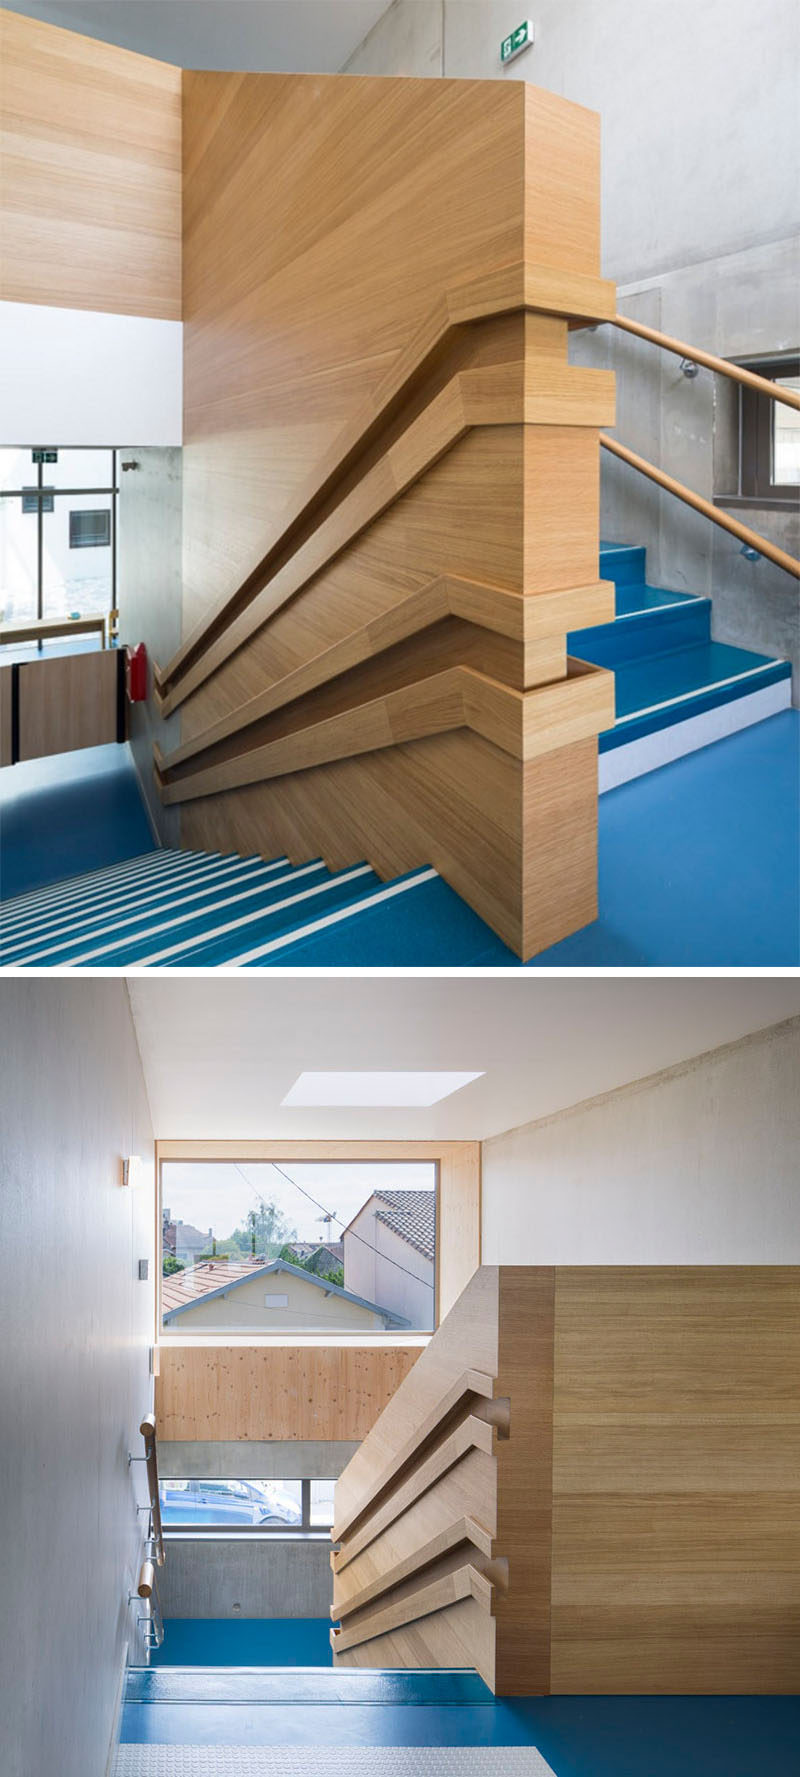 Stair Design Ideas - 9 Examples Of Built-In Handrails // These dual handrails in a day care have been built into the wood wall, making sure both the children and the adults have a space to hold on to. #BuiltInHandrail #HandrailIdeas #HandrailDesign #StairDesign #Handrails